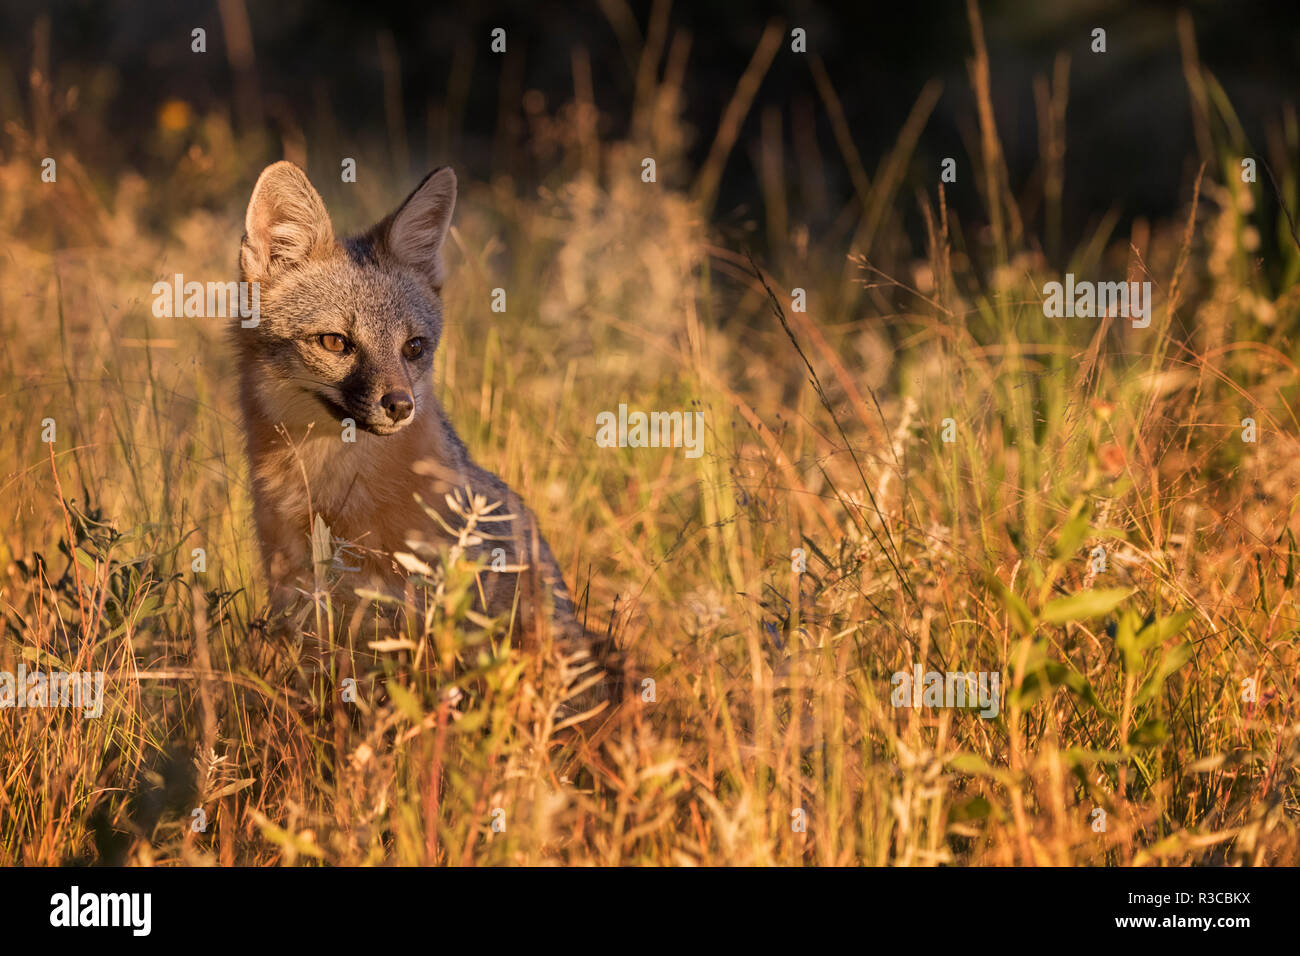 USA, Colorado, Pike National Forest. Gray fox in grass at sunset. - Stock Image